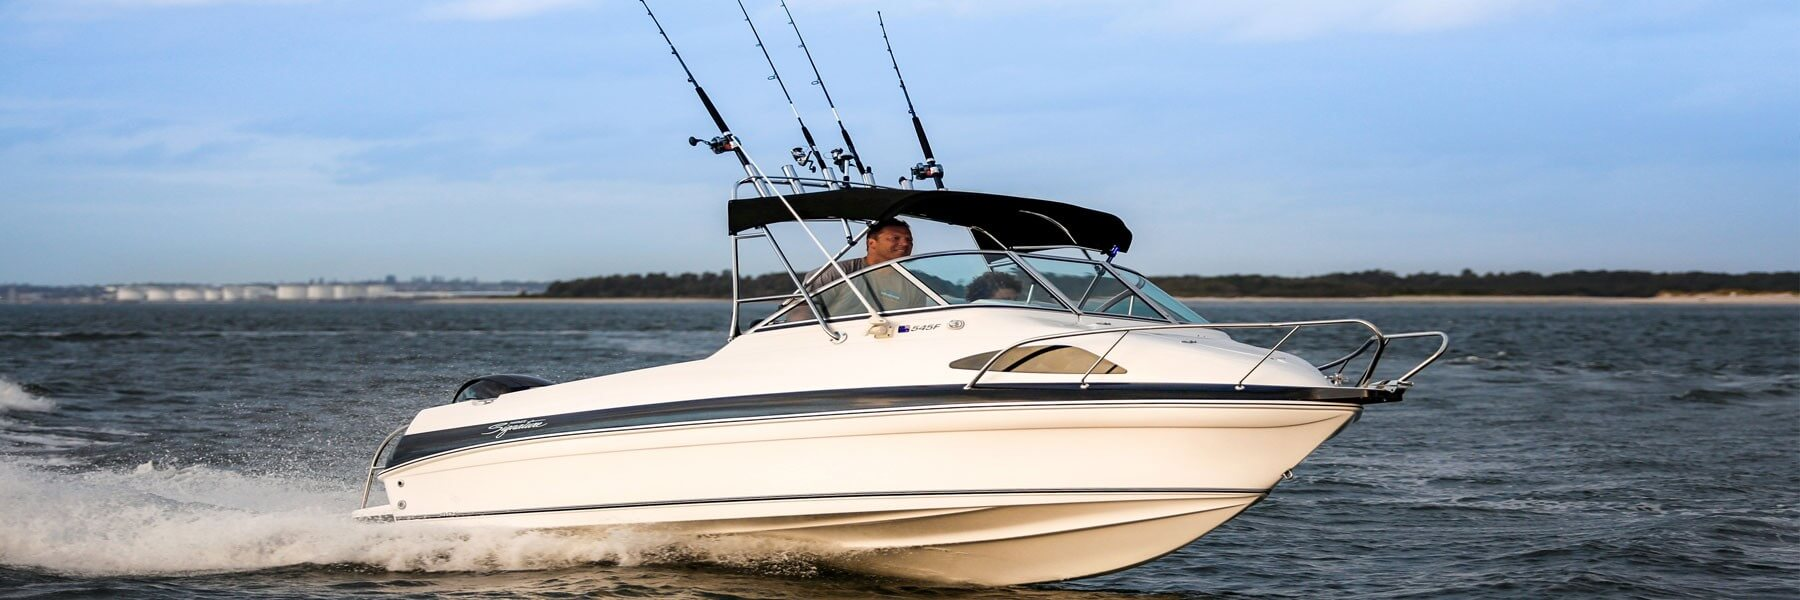 Haines Signature Boats - Fishing World takes on the 545F